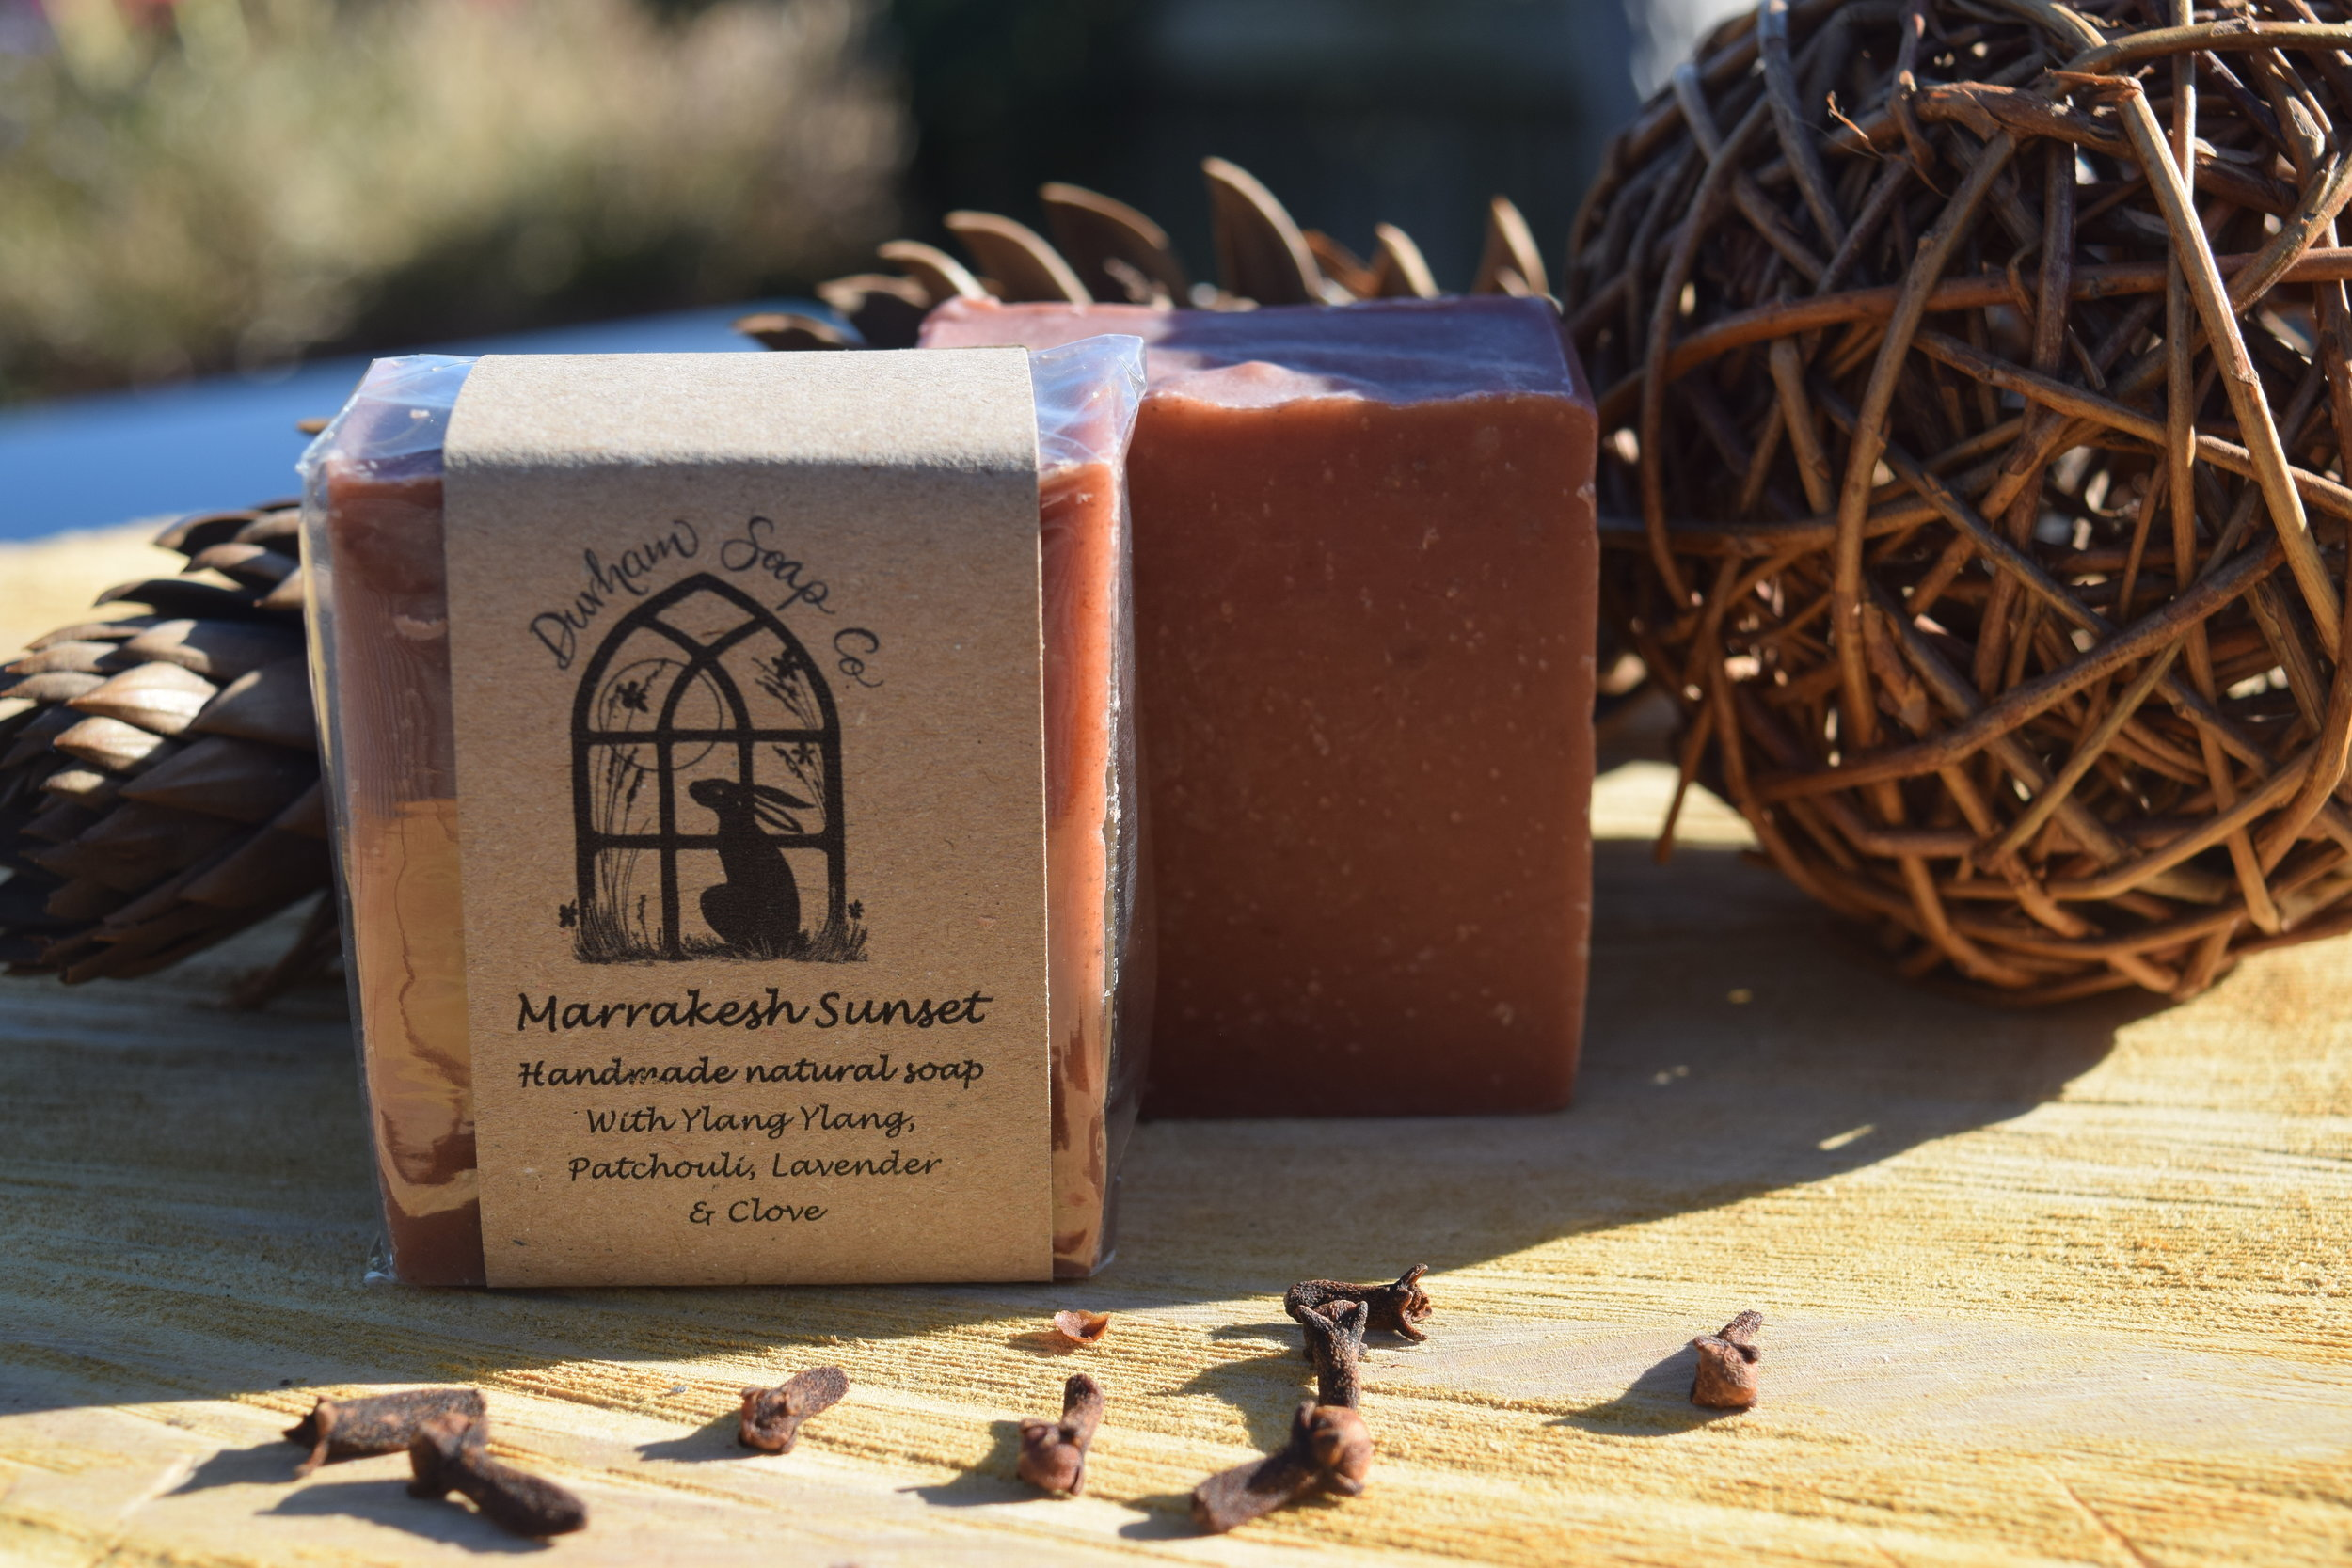 Marrakesh Sunset - Natural soap, handmade with our blend of pure plant oils, enriched with moisturising shea butter, cocoa butter and castor oil for a rich and creamy lather. Our soap also contains natural Moroccan lava clay for its detoxifying properties and its rich red colour and is fragranced with a blend of ylang ylang, patchouli, lavender and clove essential oils to tantalise the senses with the rich scents of the spice route; camel caravans laden with their precious cargo of silks and spices heading from East to West via the souks of Marrakesh.Ingredients: Olive oil, coconut oil, sunflower oil, shea butter, cocoa butter, water, castor oil, Moroccan lava clay, ylang ylang oil, patchouli oil, lavender oil, clove bud oil, Vitamin E, benzyl benzoate*, benzyl salicylate*, eugenol*, farnesol*, geraniol*, linalool*, * = occurs naturally in essential oils.Net weight: 100 g